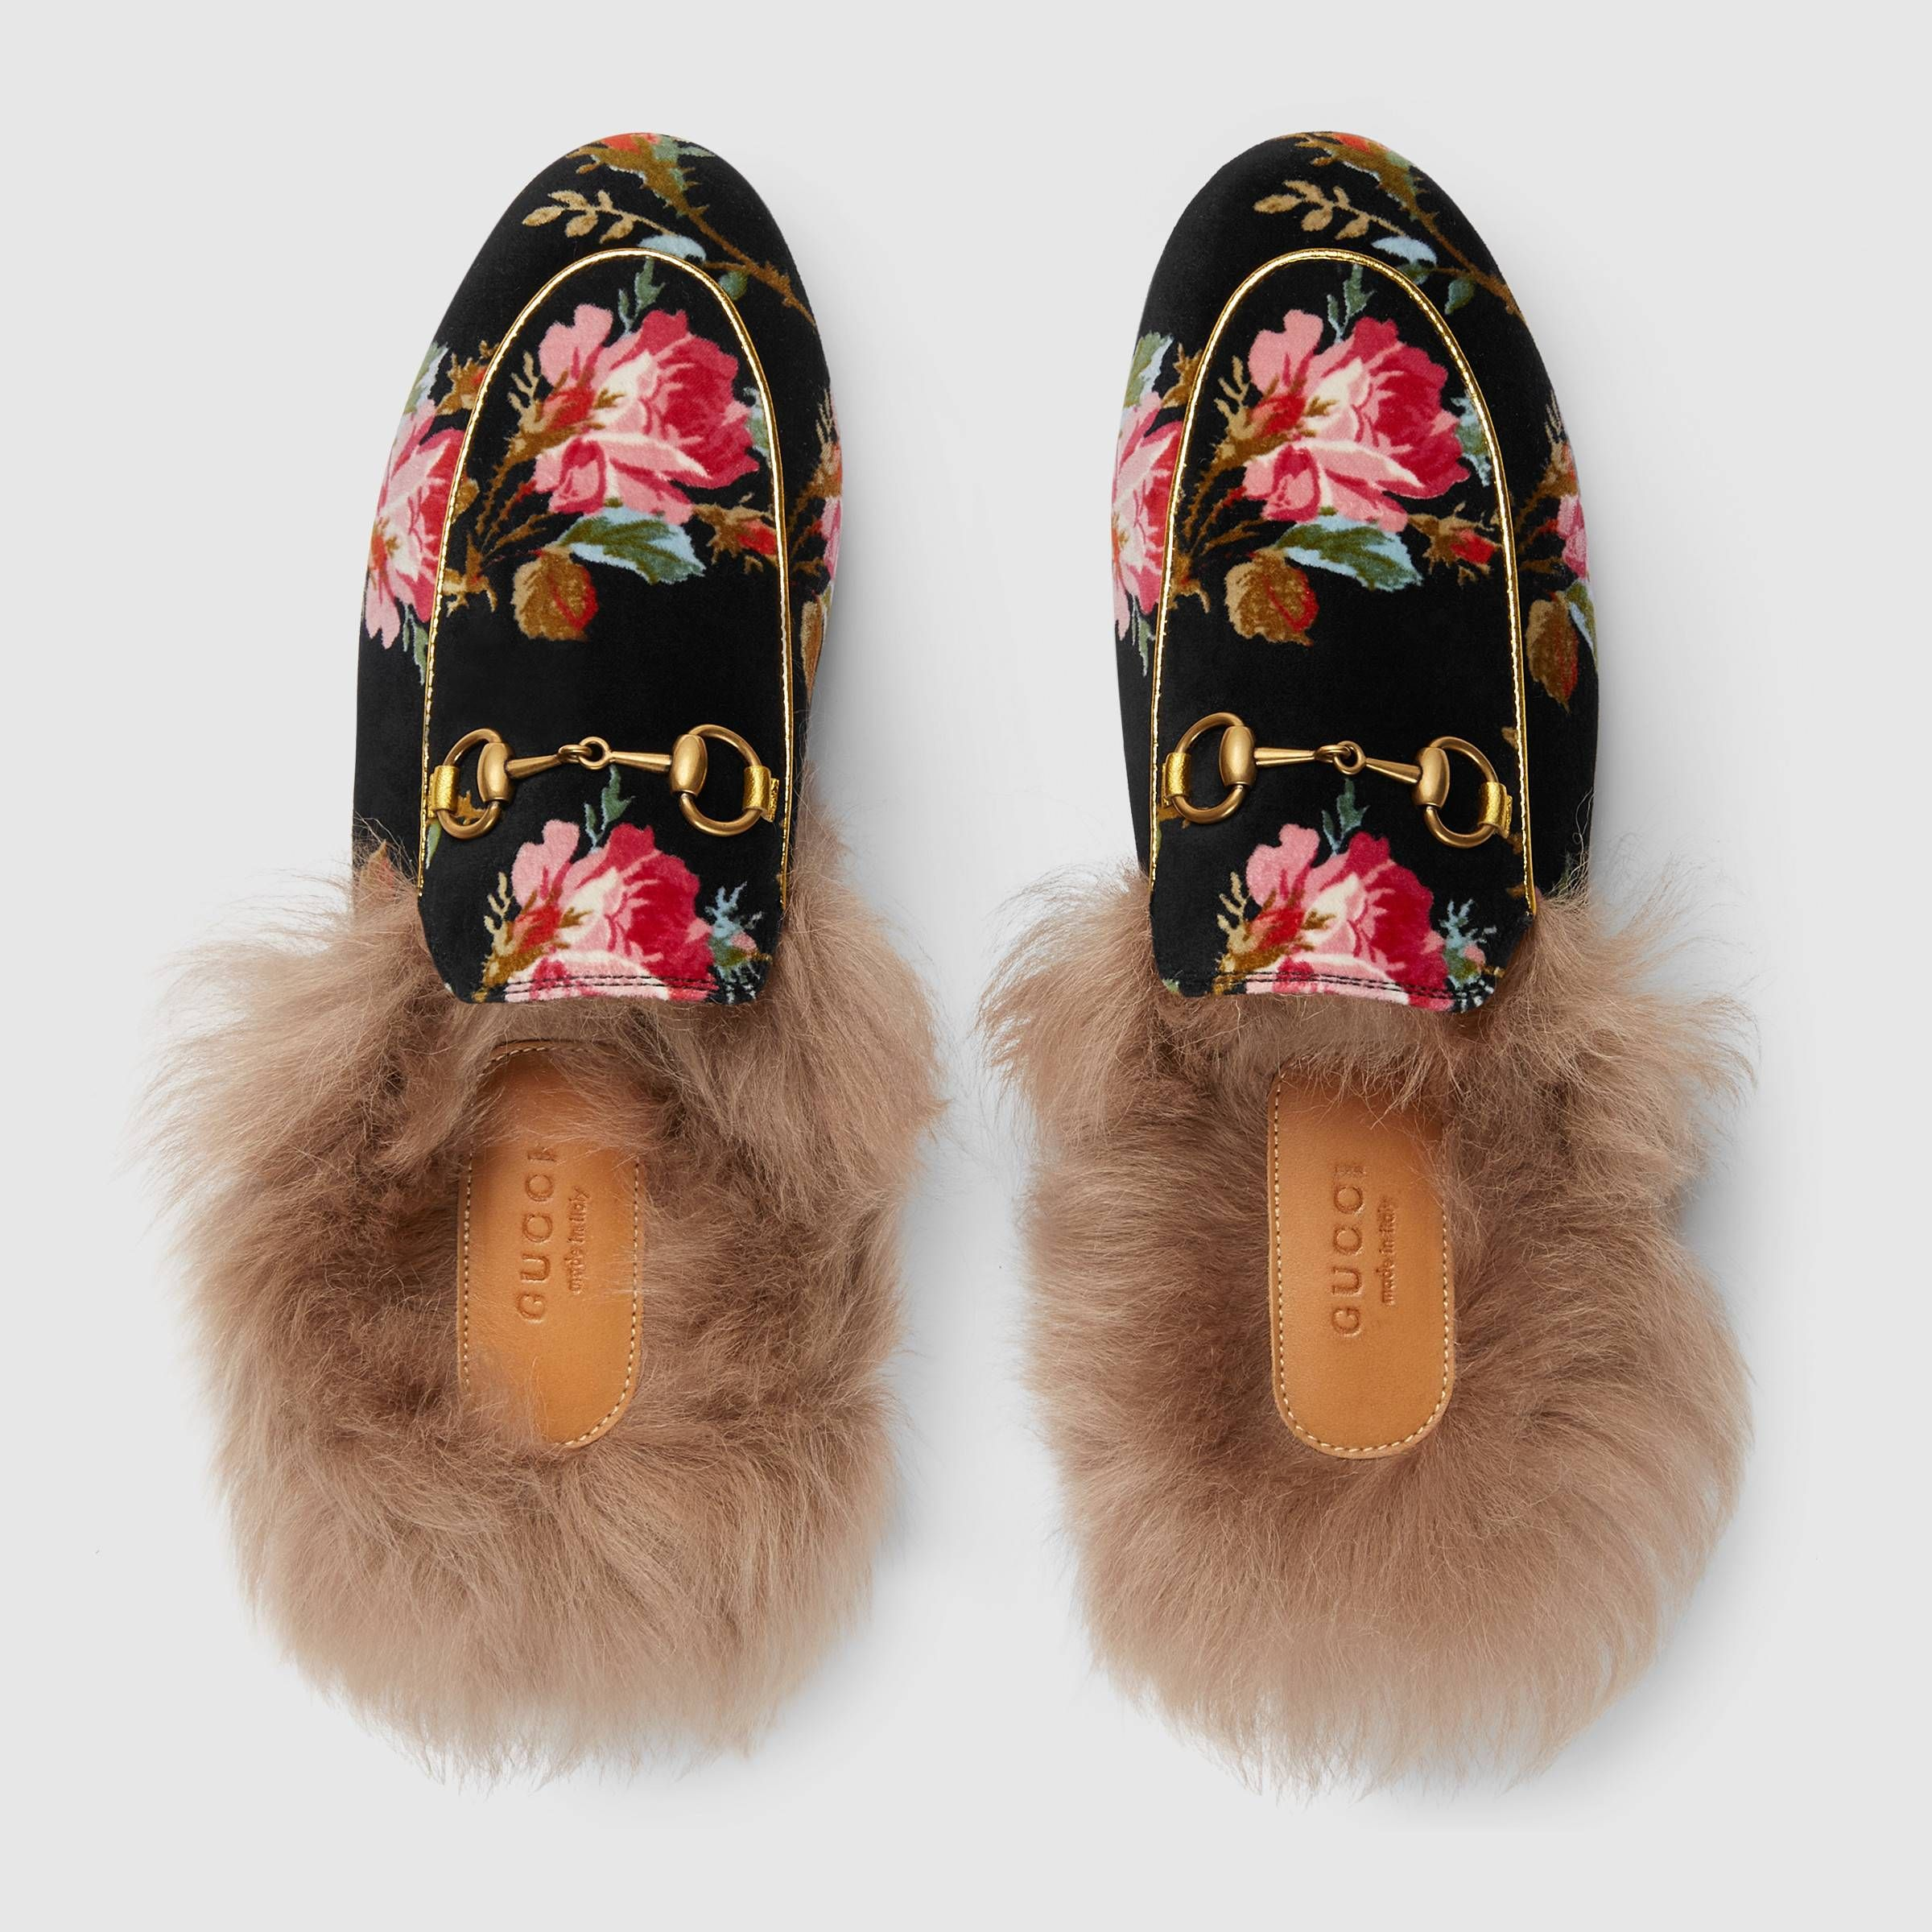 e7e8a7810f0 Princetown rose velvet slipper - Gucci Women s Moccasins   Loafers  4486579ML201105